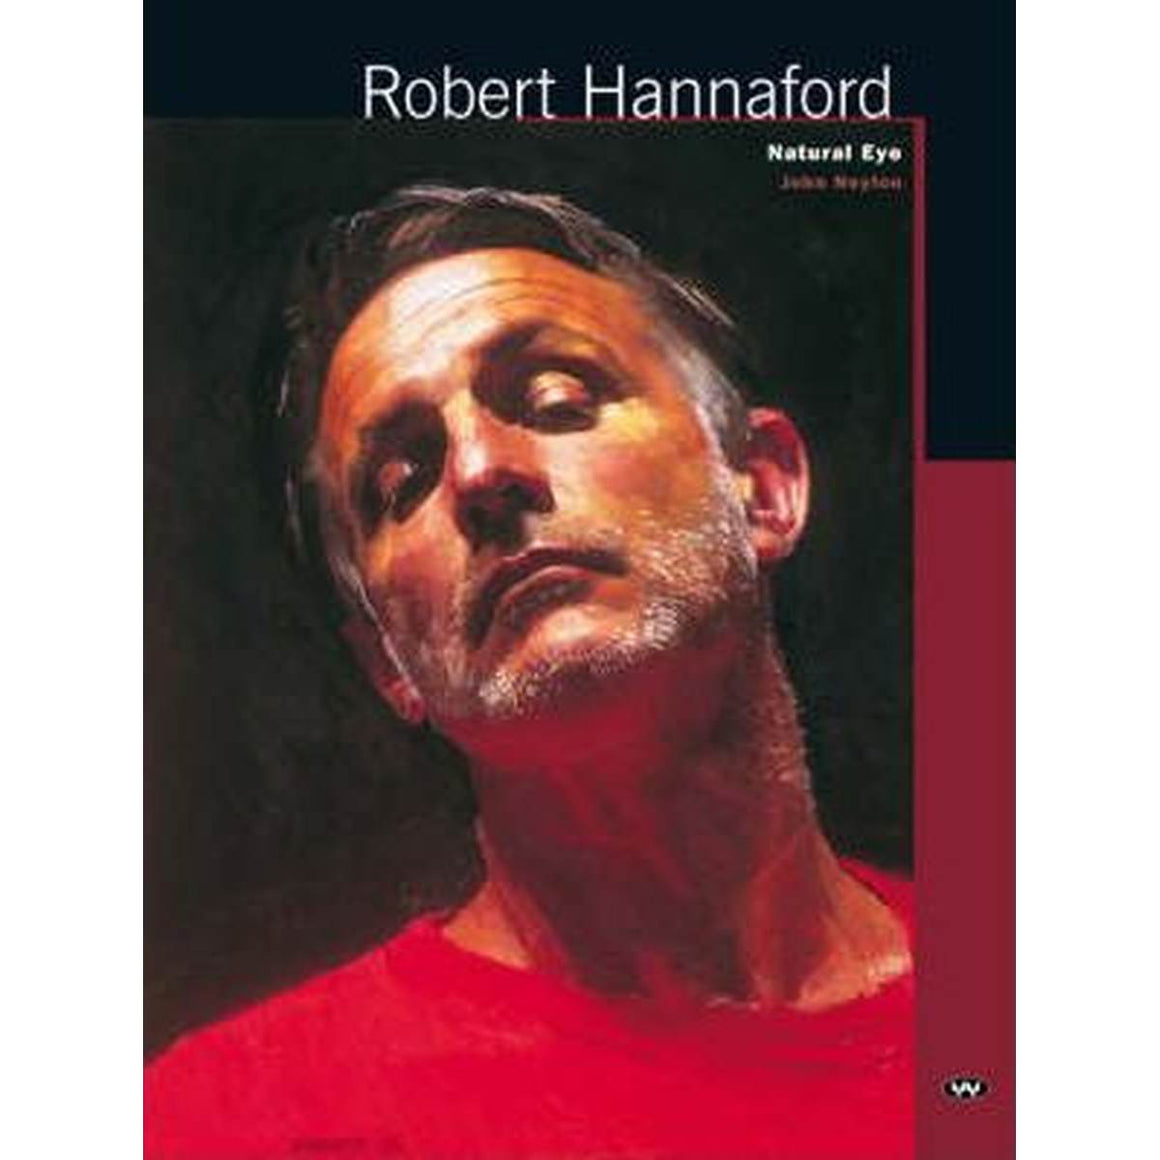 Robert Hannaford: Natural Eye | Author: John Neylon